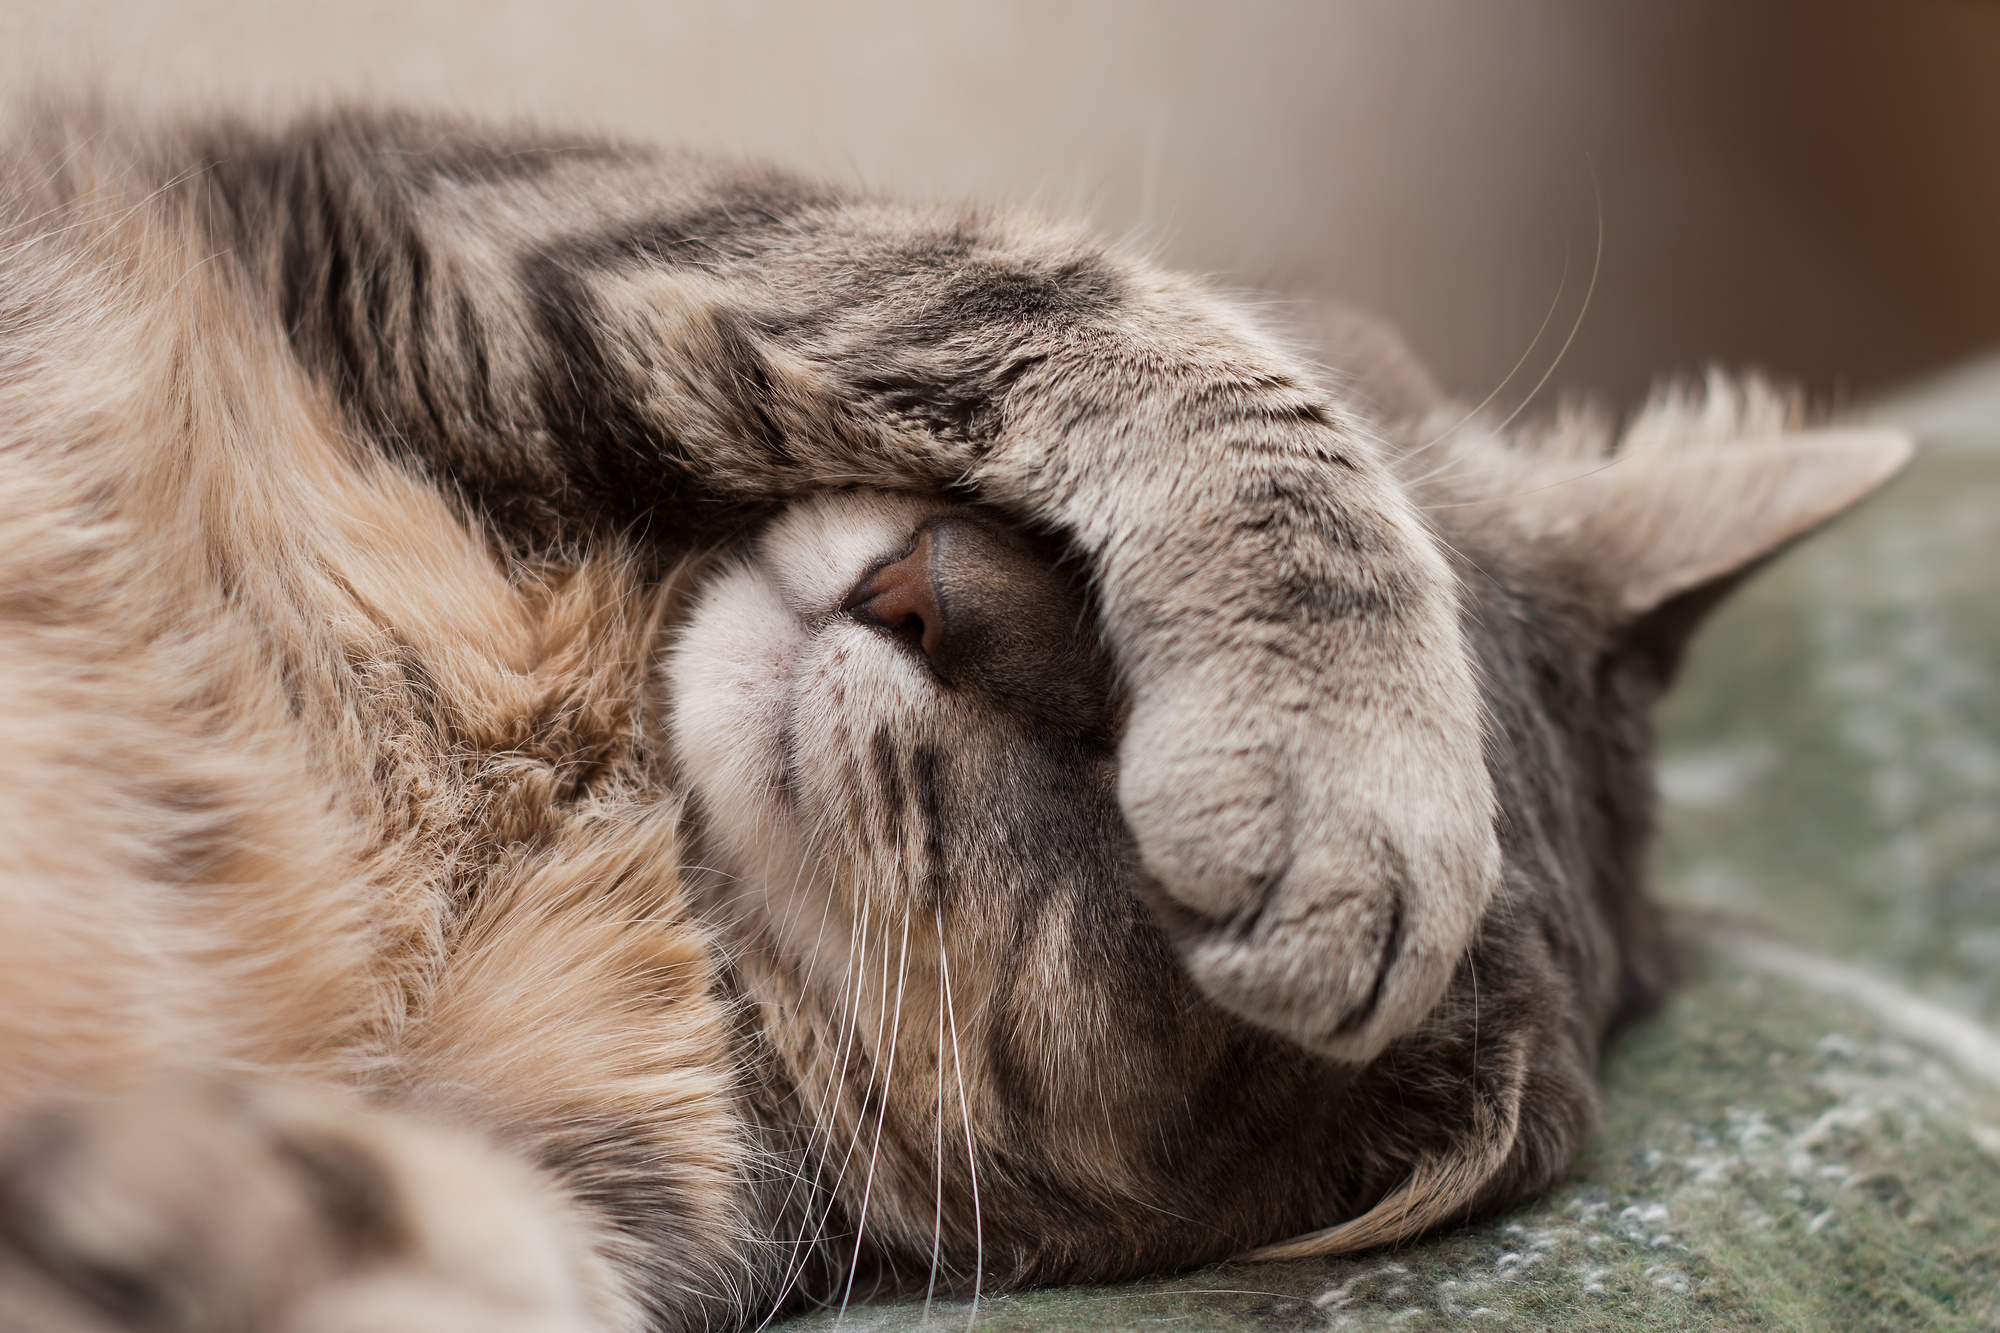 Does Your Pet Look a Little Peaked? 9 Signs That You've Got a Sick Cat